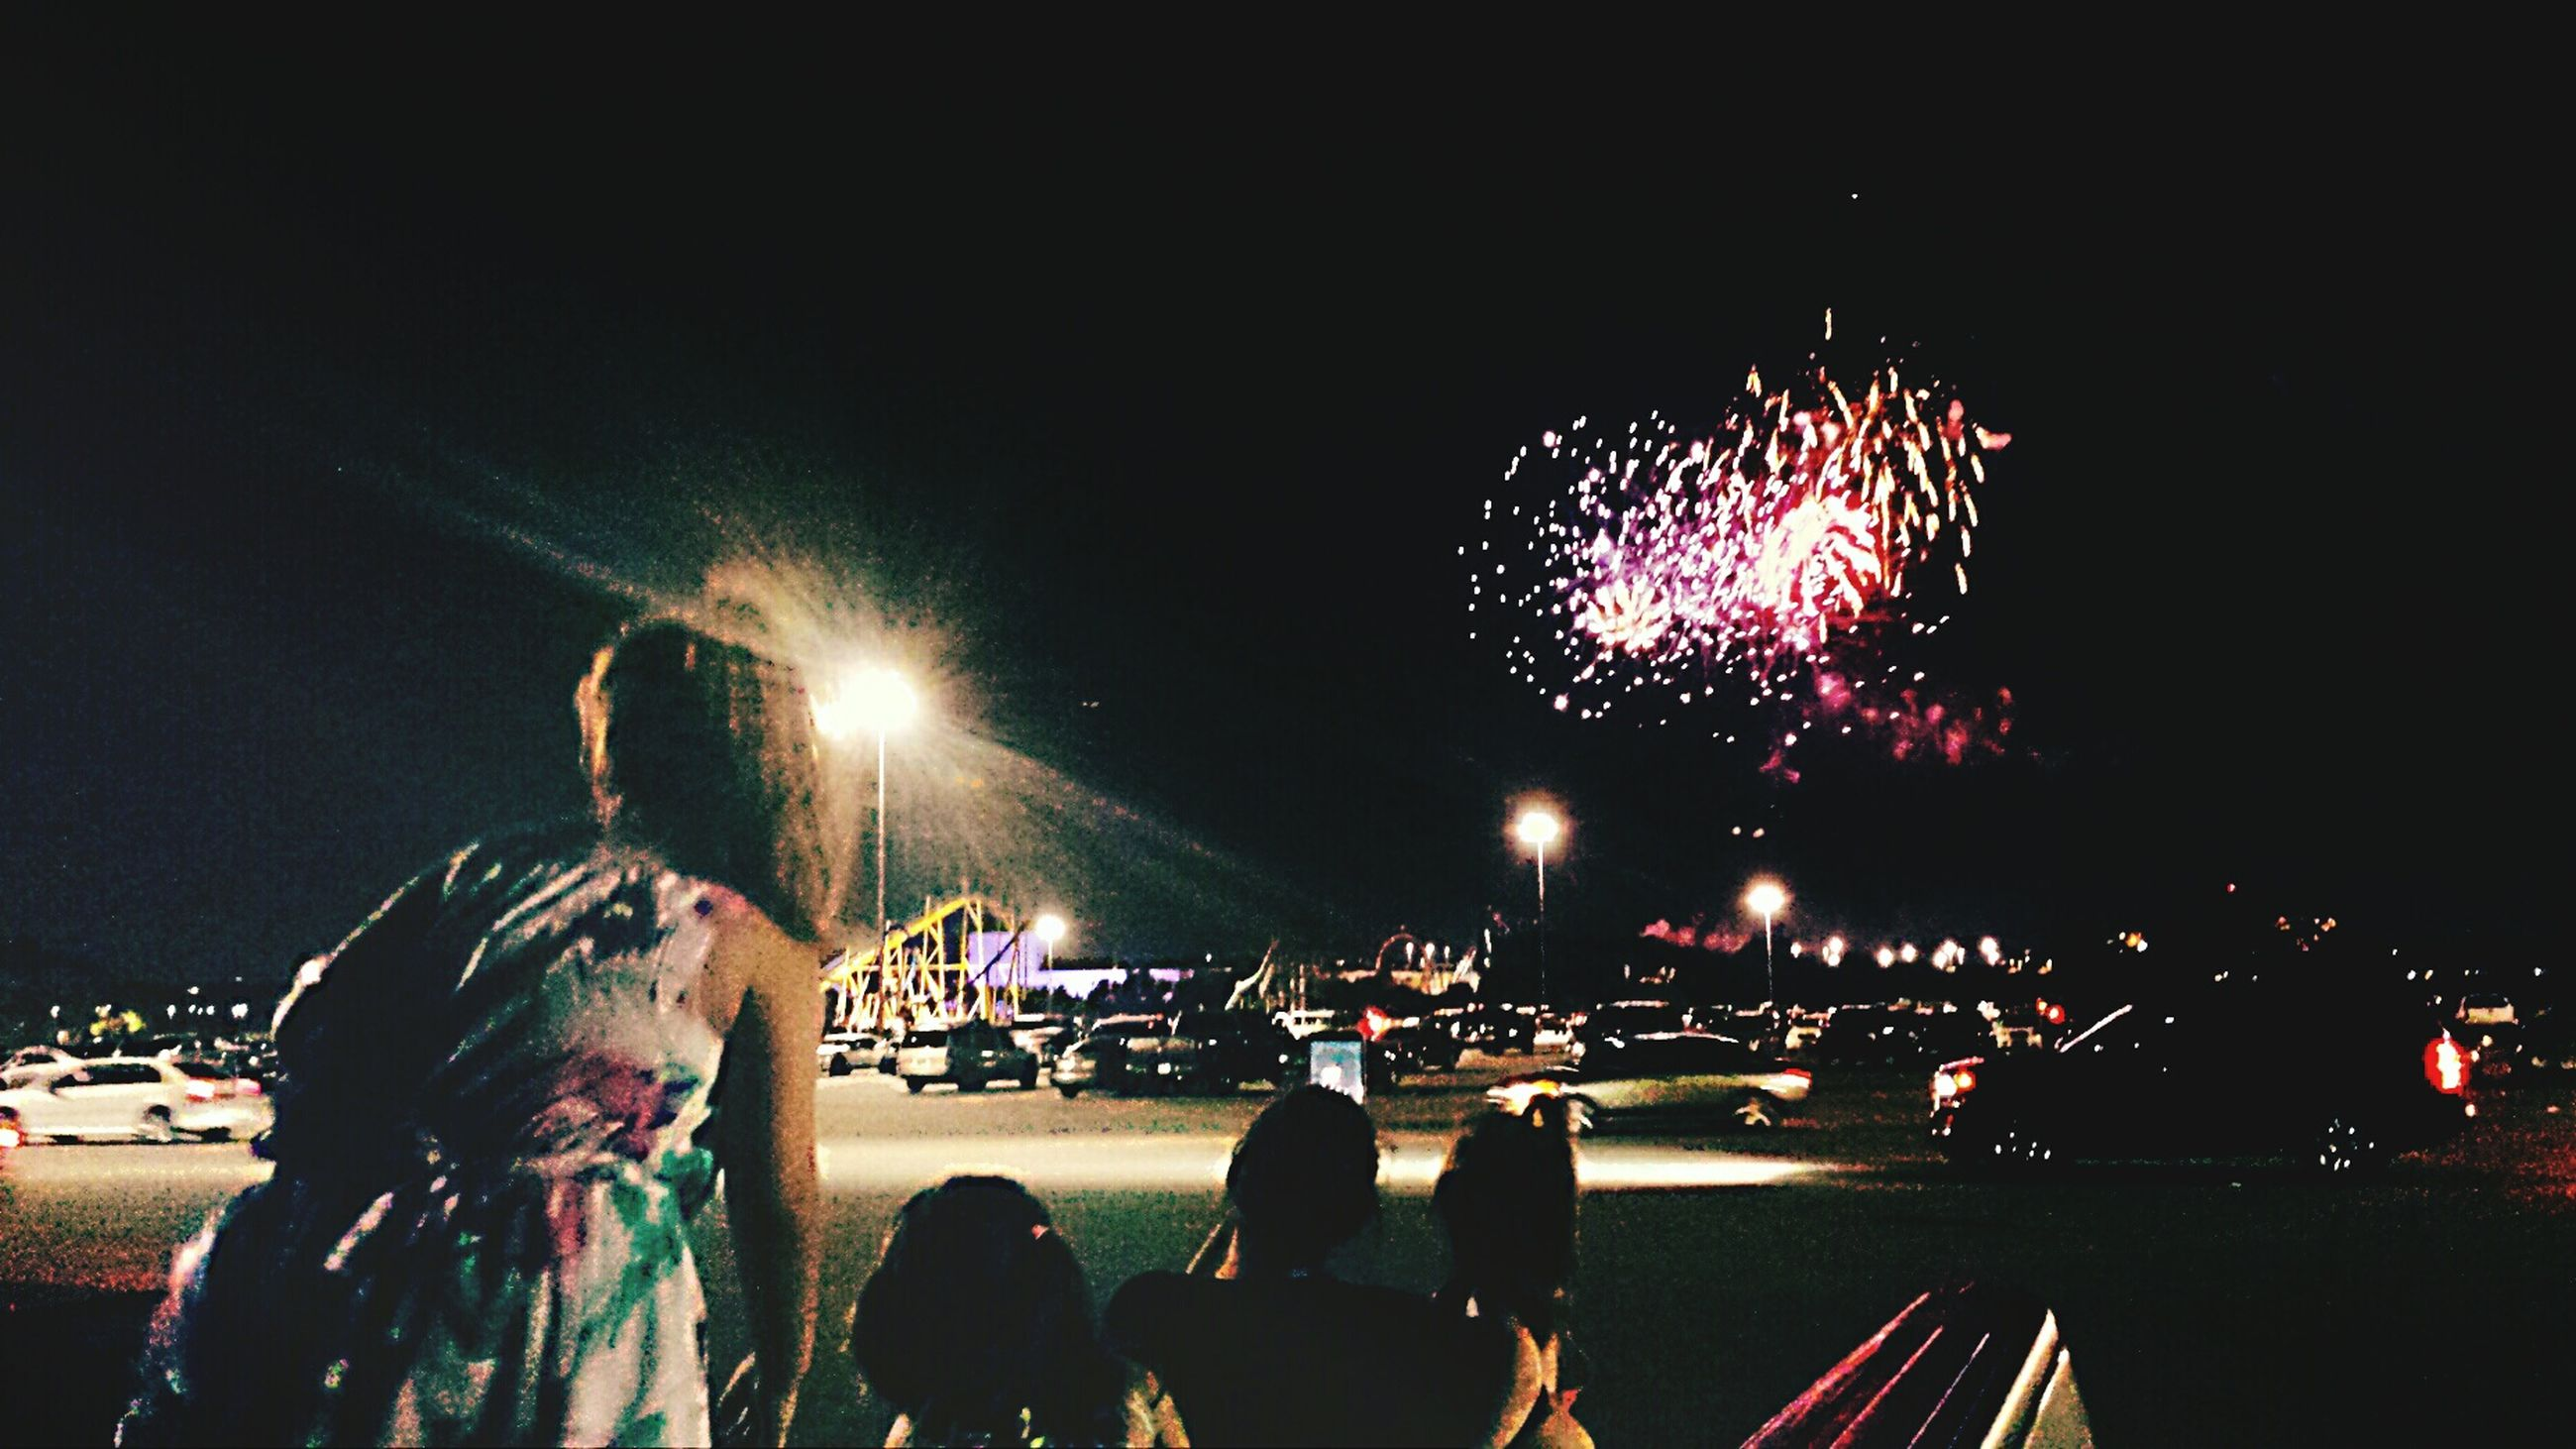 night, illuminated, arts culture and entertainment, firework display, exploding, long exposure, event, sparks, firework - man made object, motion, celebration, lifestyles, leisure activity, entertainment, men, blurred motion, glowing, firework, large group of people